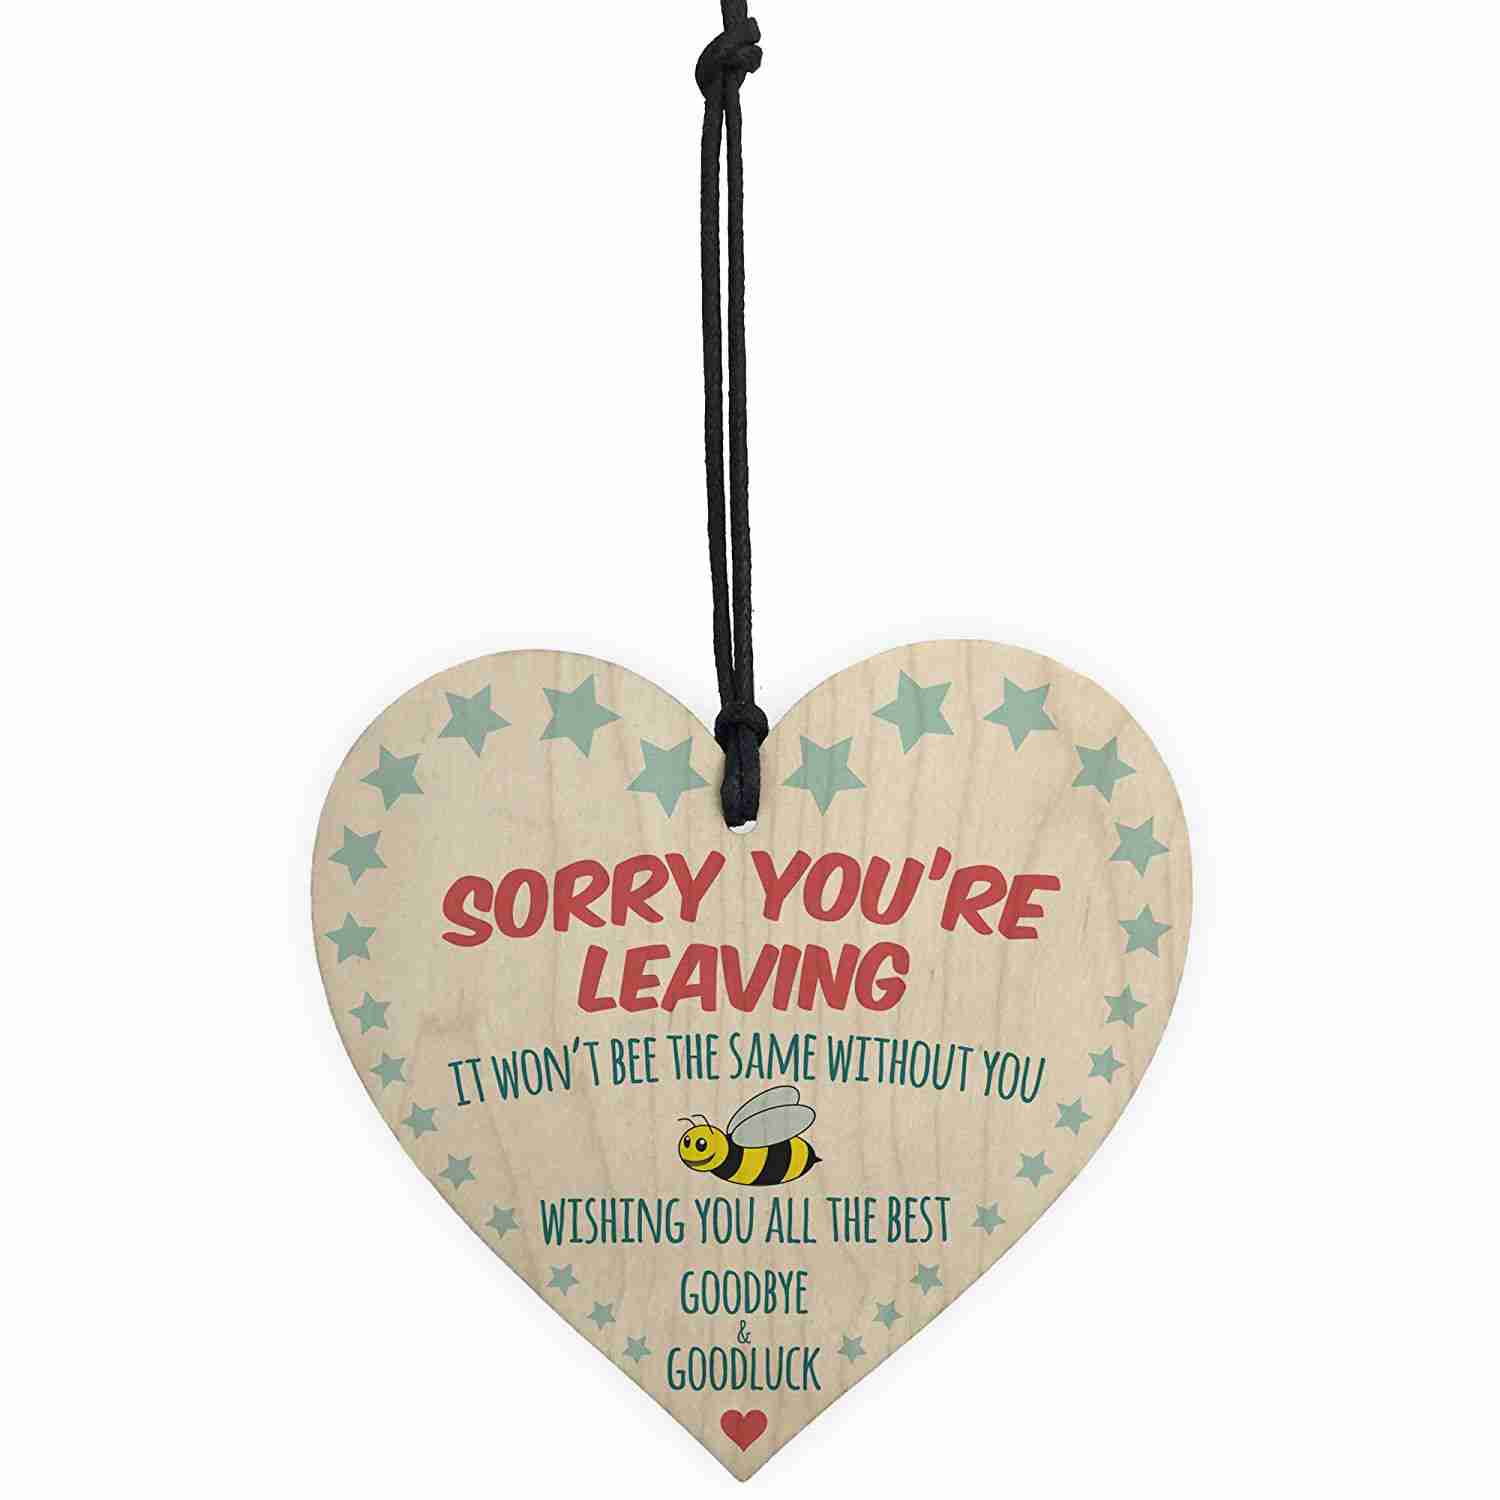 253ab2f006bc HOT SALE Sorry You re Leaving Wooden Hanging Heart Cute Funny Work Colleague  Leaving Gift